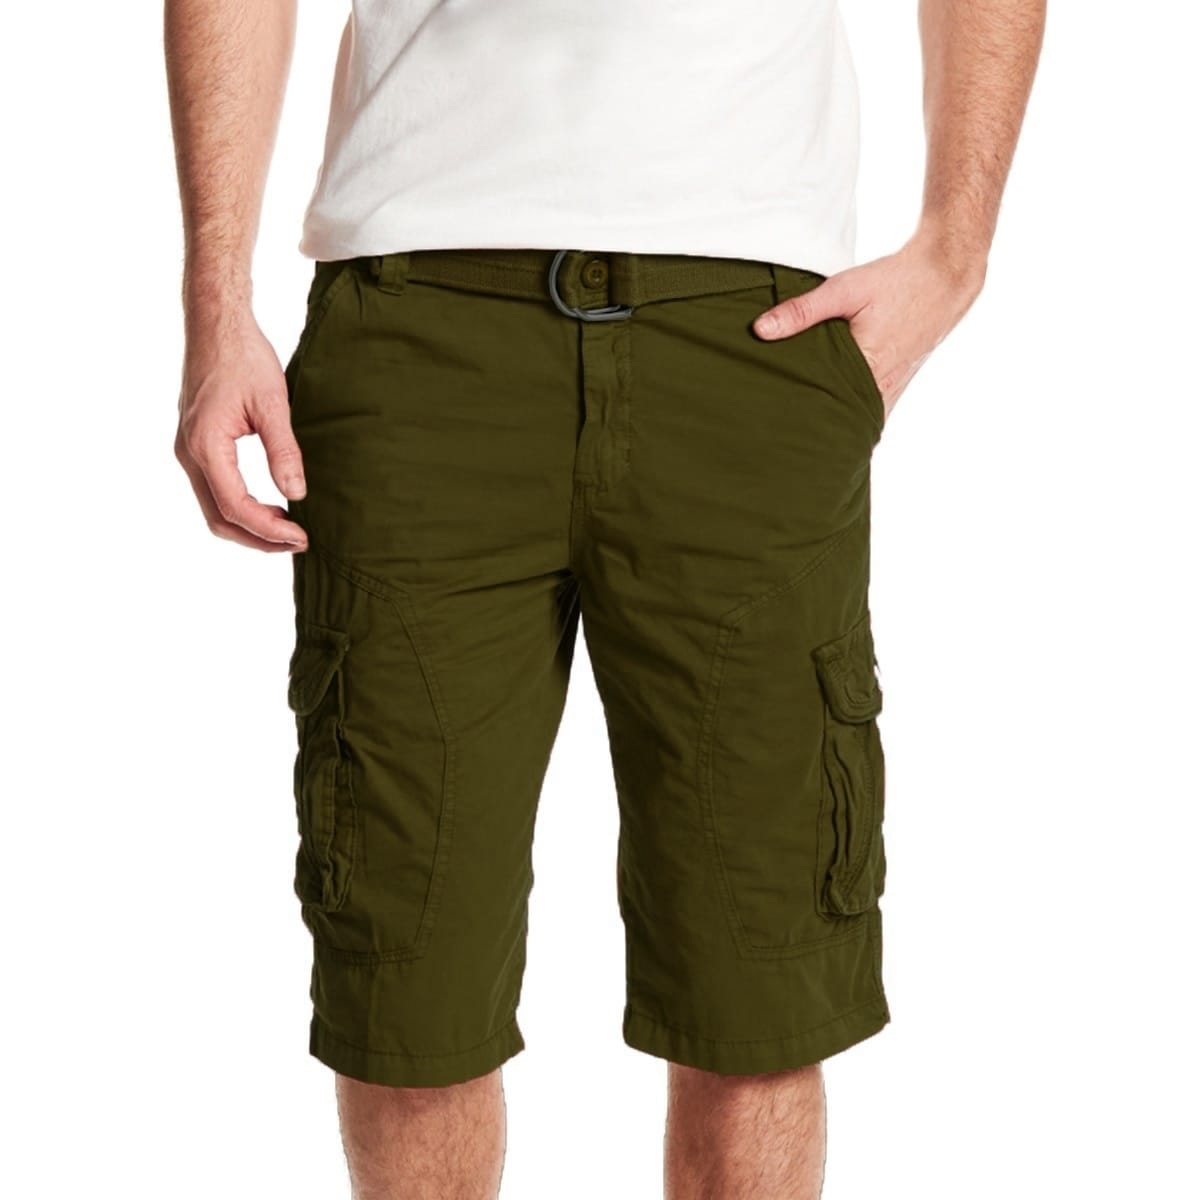 5629c499ae Shop Xray Jeans Mens Belted All Season Casual Cargo Shorts - Free Shipping  On Orders Over $45 - Overstock - 27366357